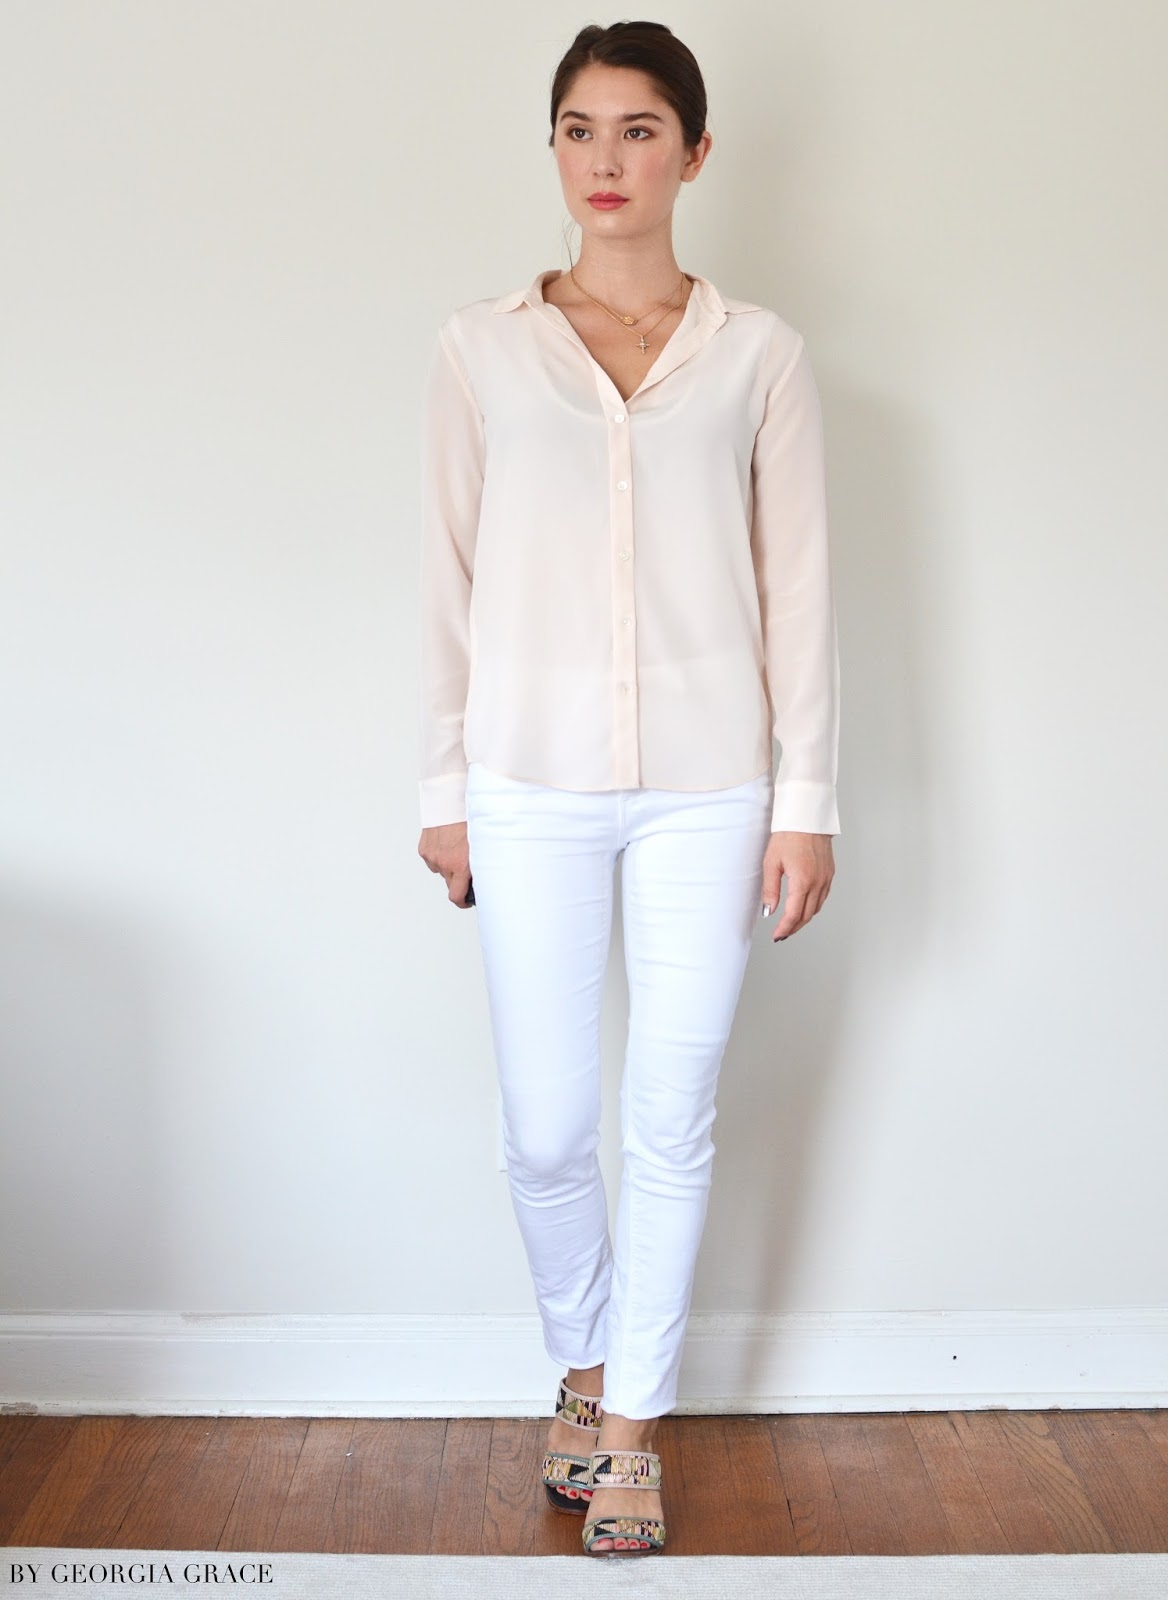 bb355f3a02 I got the Slim Silk Shirt ($78) in Pale Pink, size 00, and it's a perfect  fit for my 100 lbs., 5'2″ petite frame. The shirt is a slimmer, ...